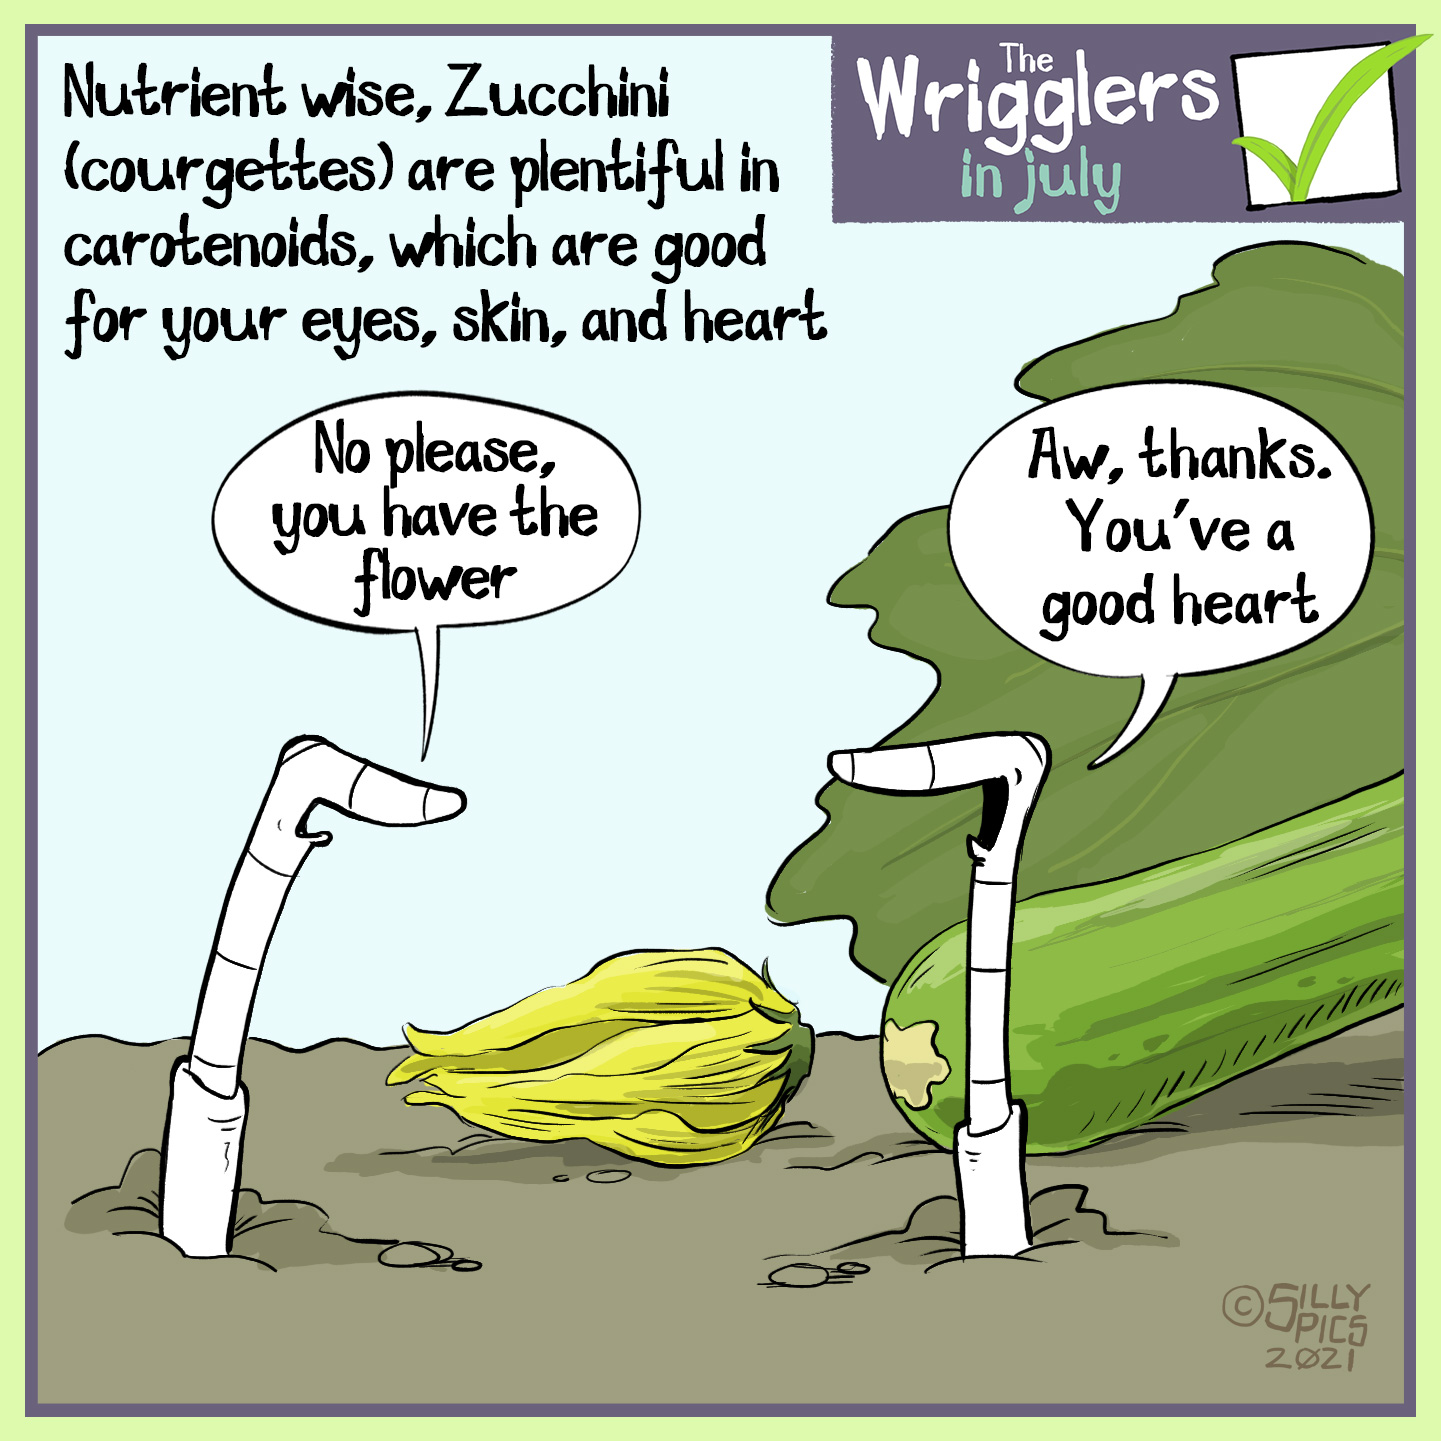 """The cartoon reads, Nutrint wise, Zucchini (courgettes) are plentiful in carotenoids, which are good for your eyes, skin and heart The cartoon is of two worms in front of a flowering courgette plant. One worm says, """" No please, you have the flower"""" The other worm replies, """"Aw, thanks. You've got a good heart"""""""